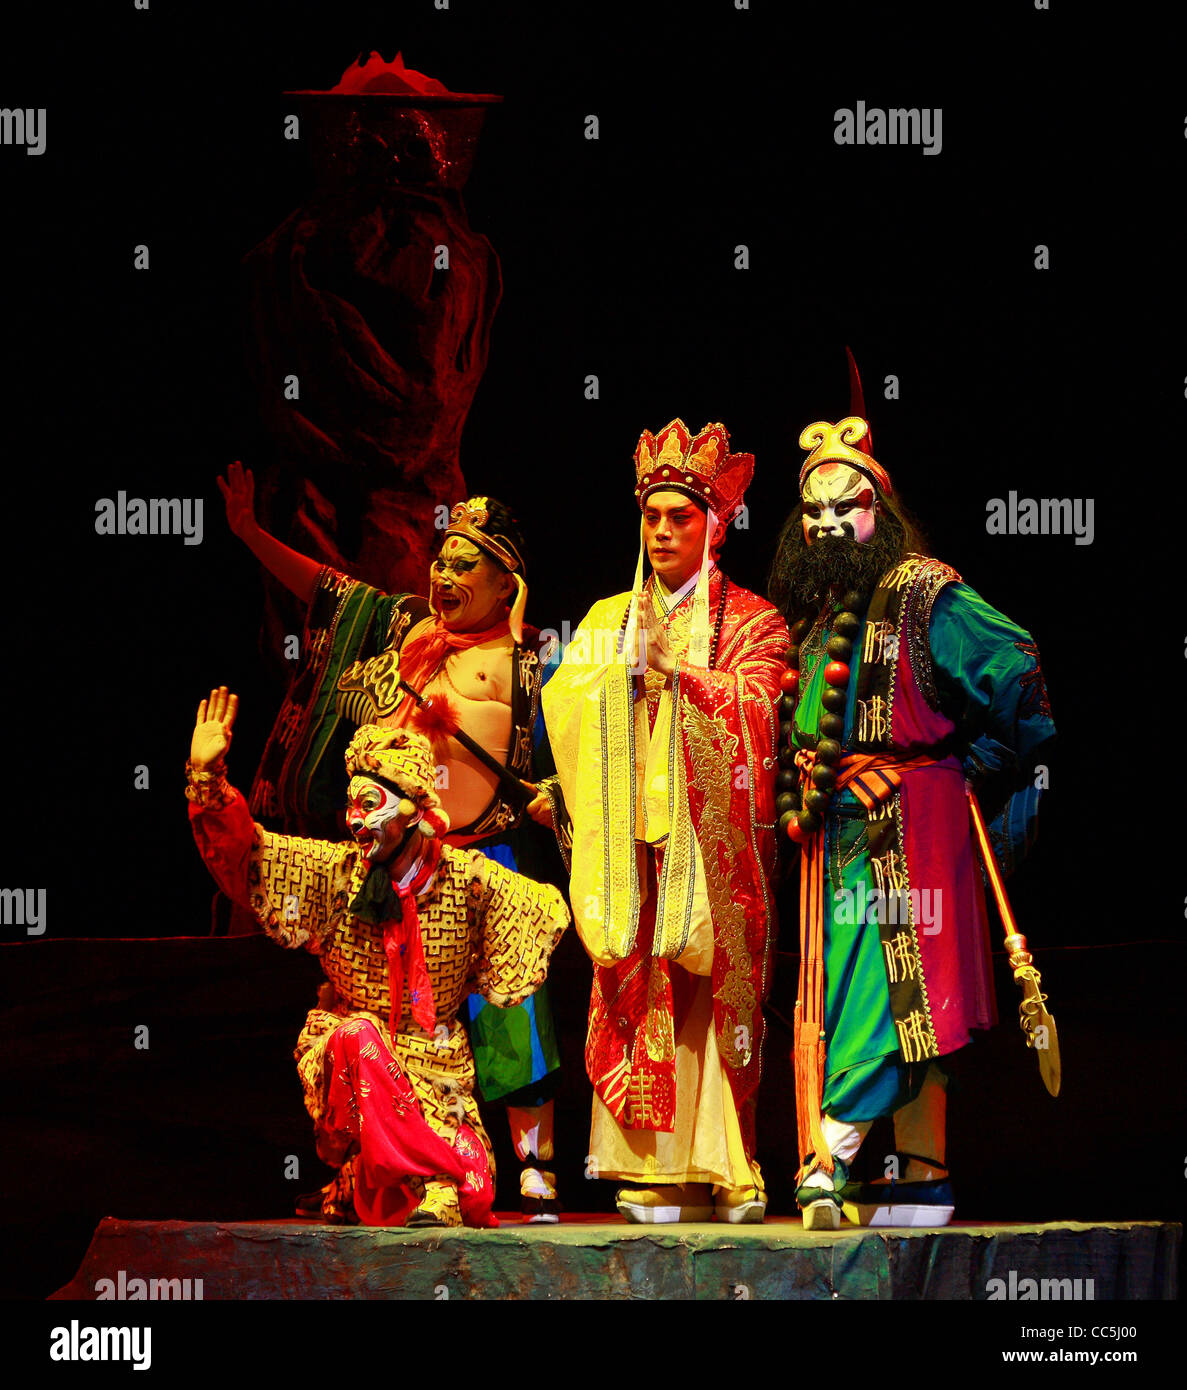 Peking opera actors performing a scene of the Journey to the West, Beijing, China - Stock Image